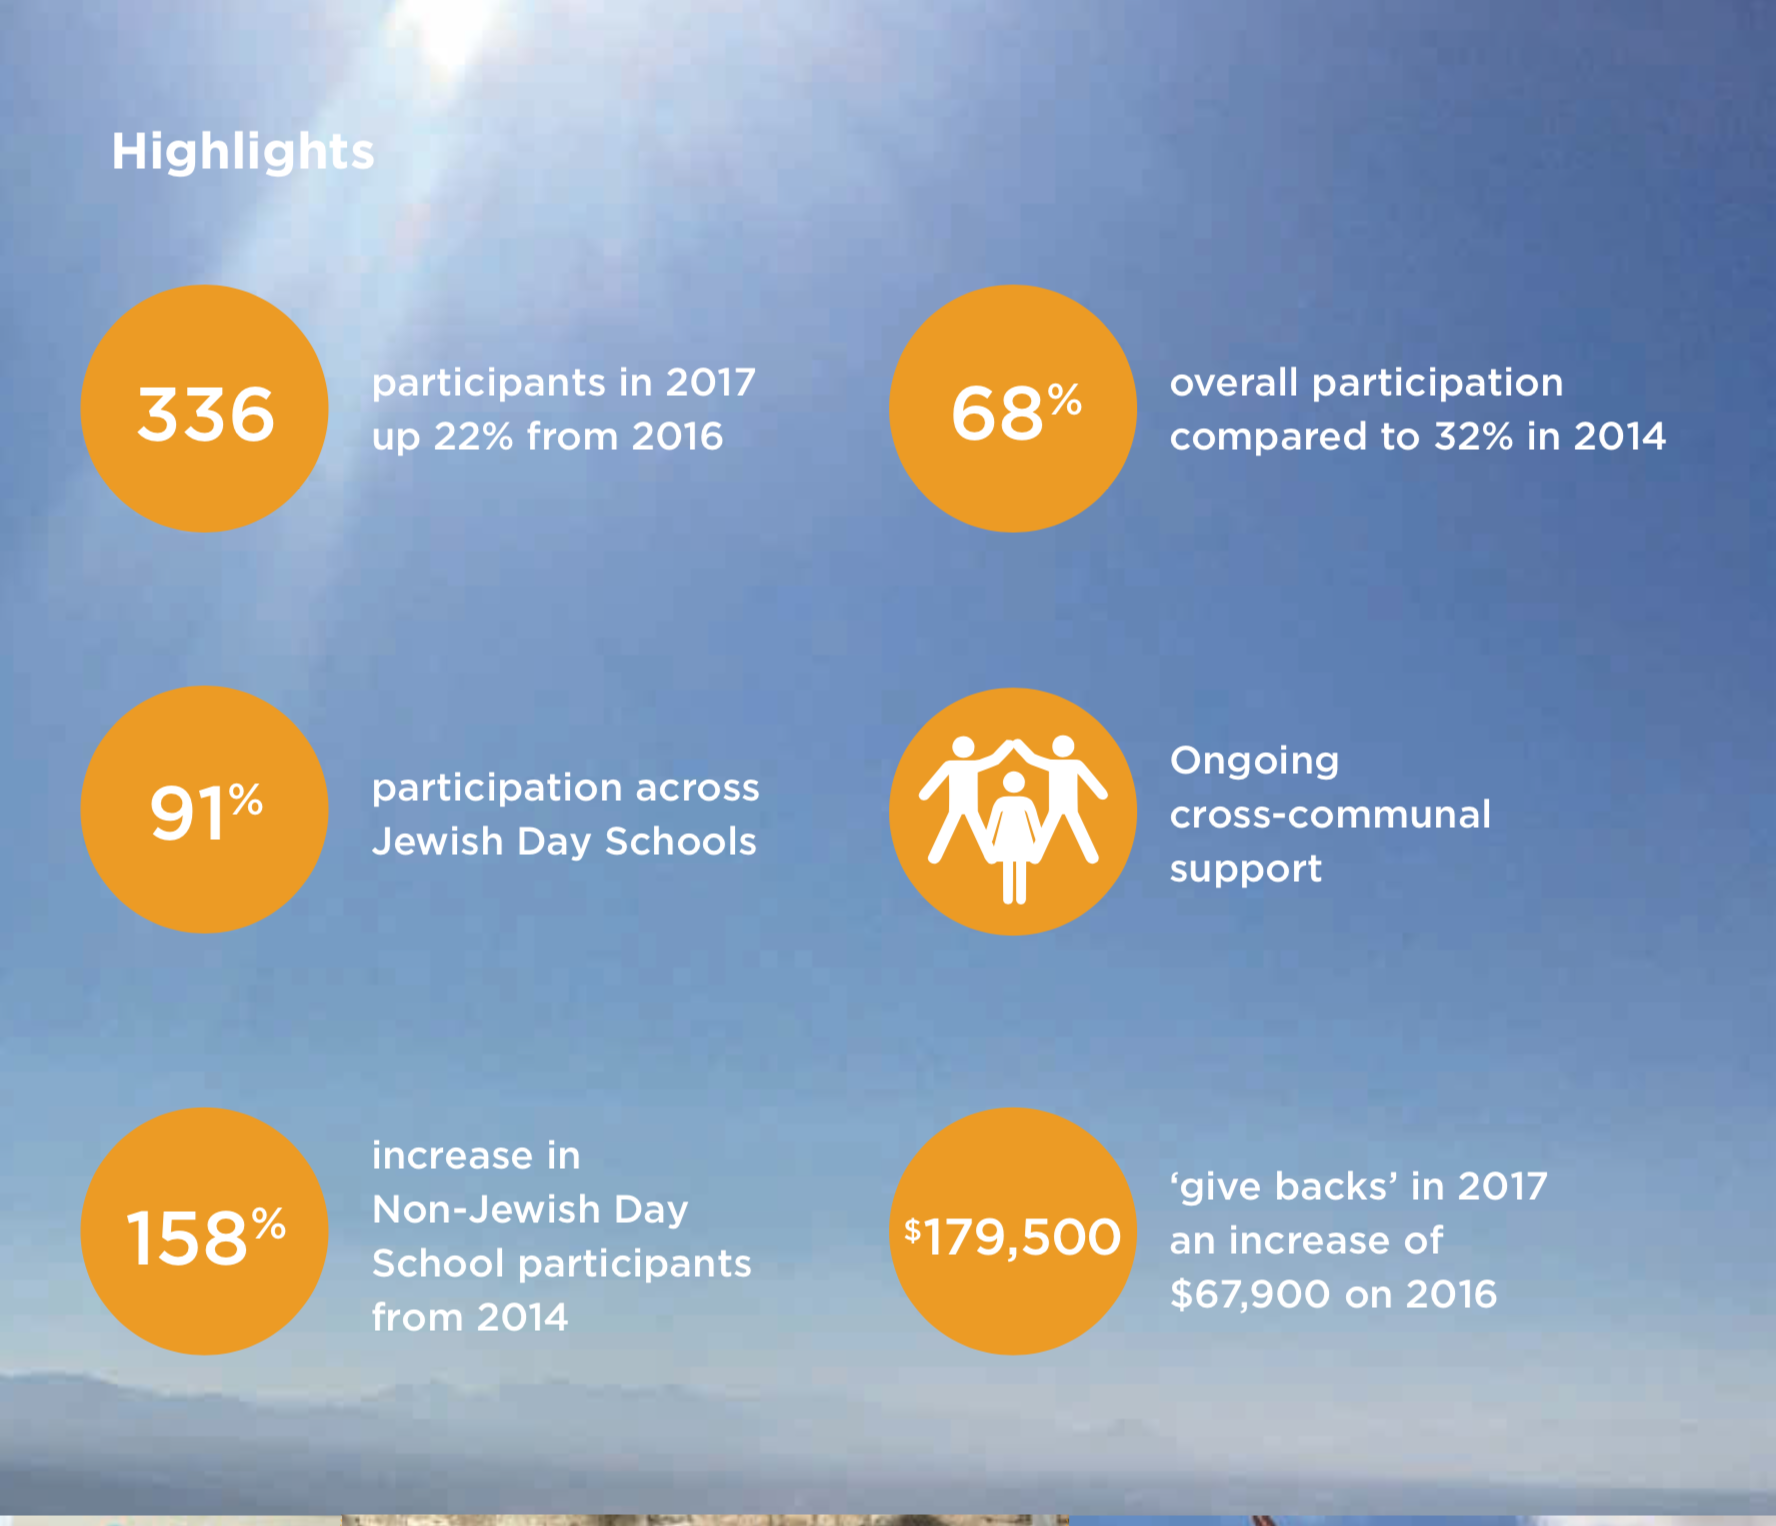 2017 Youth 2 Israel Annual Report Highlights